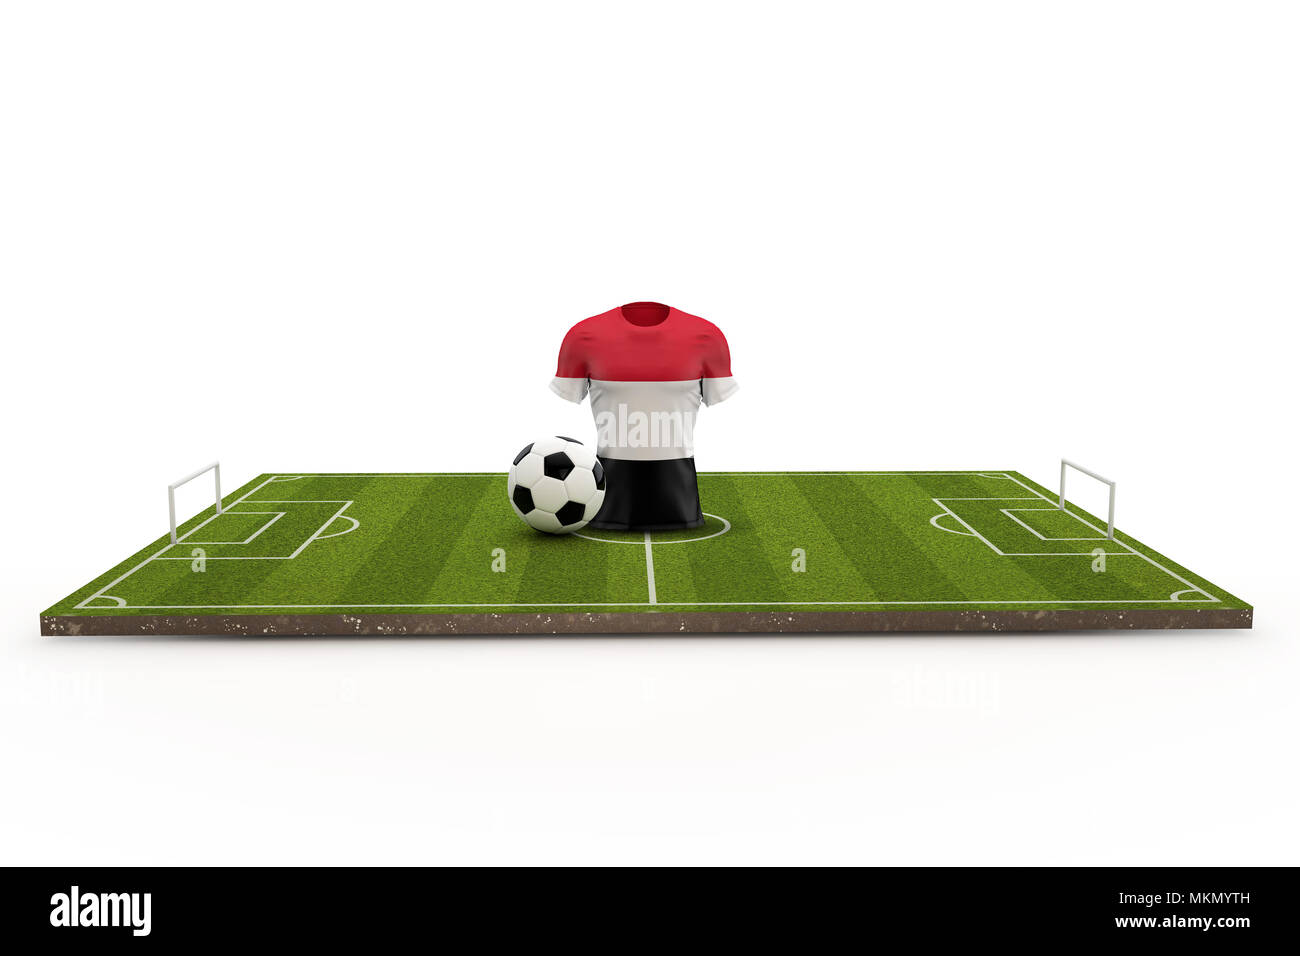 Yemen soccer shirt national flag on a football pitch. 3D Rendering - Stock Image